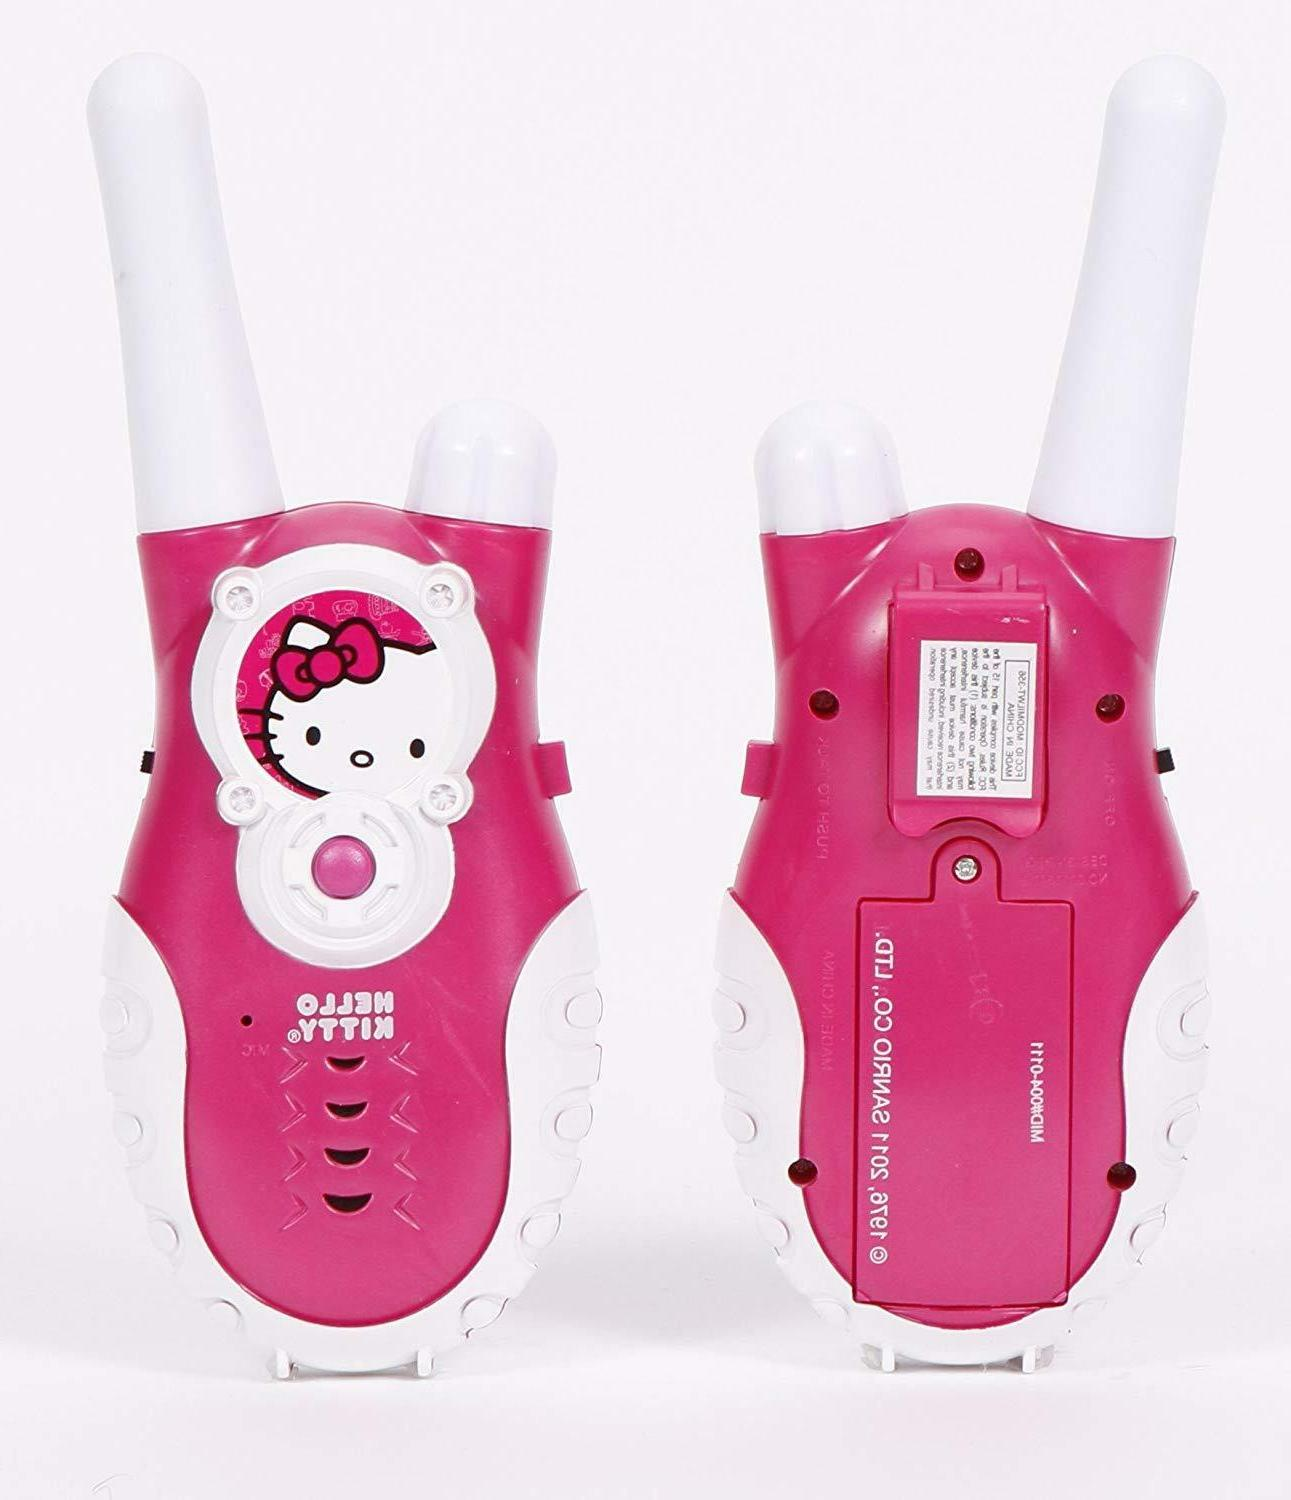 Hello Kitty Push to Talk Walkie Talkies, Pink